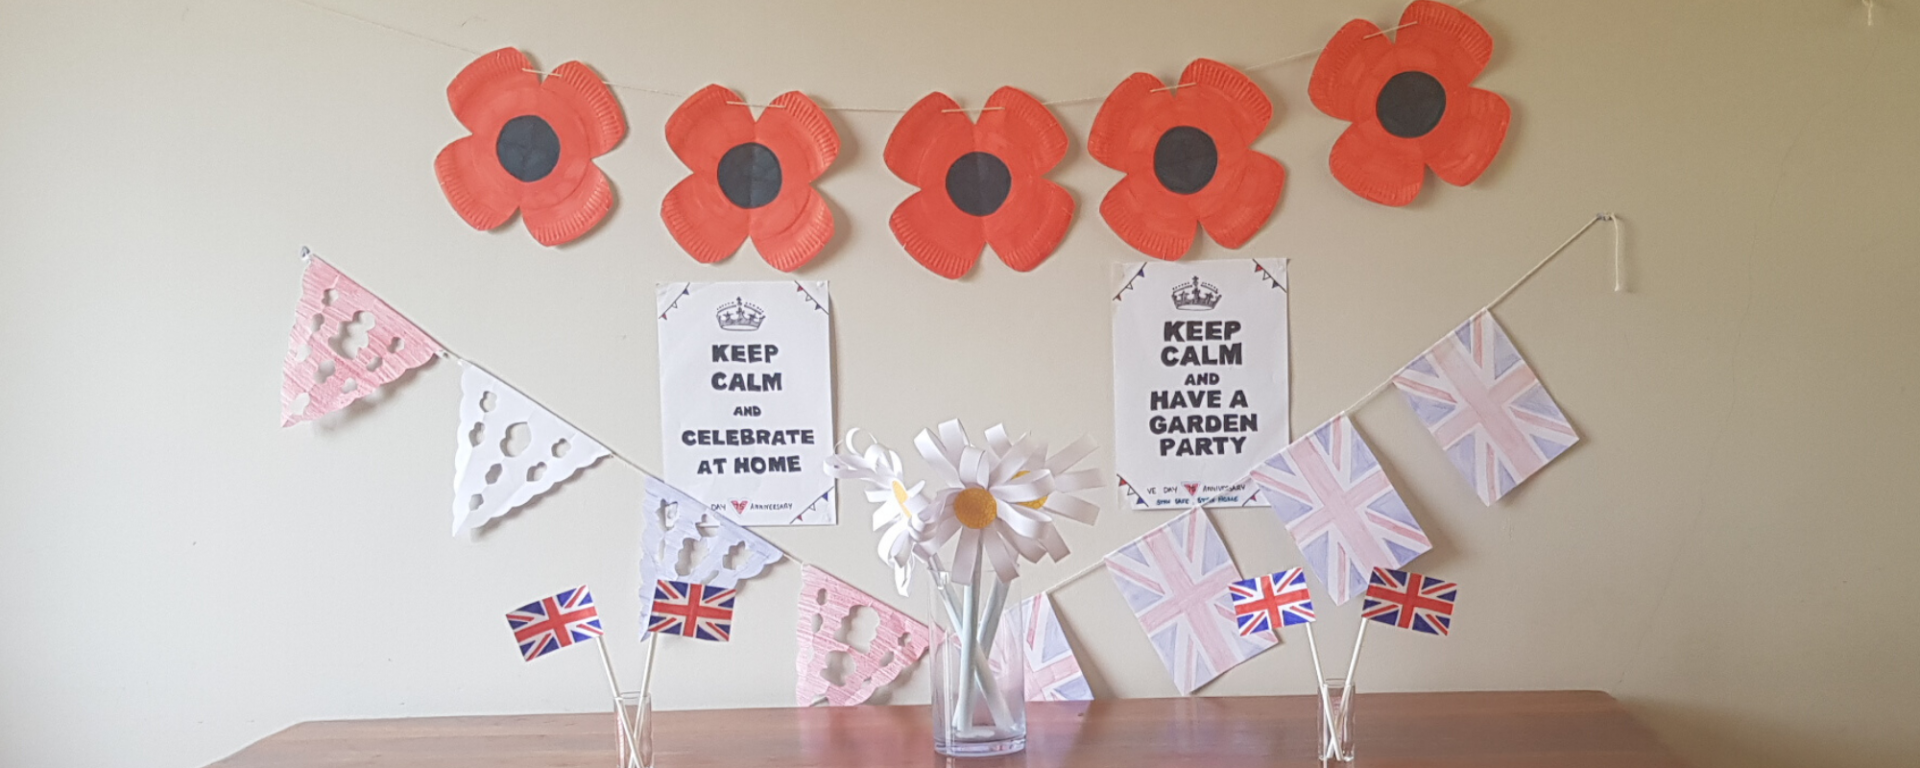 VE Day stay at home party decorations